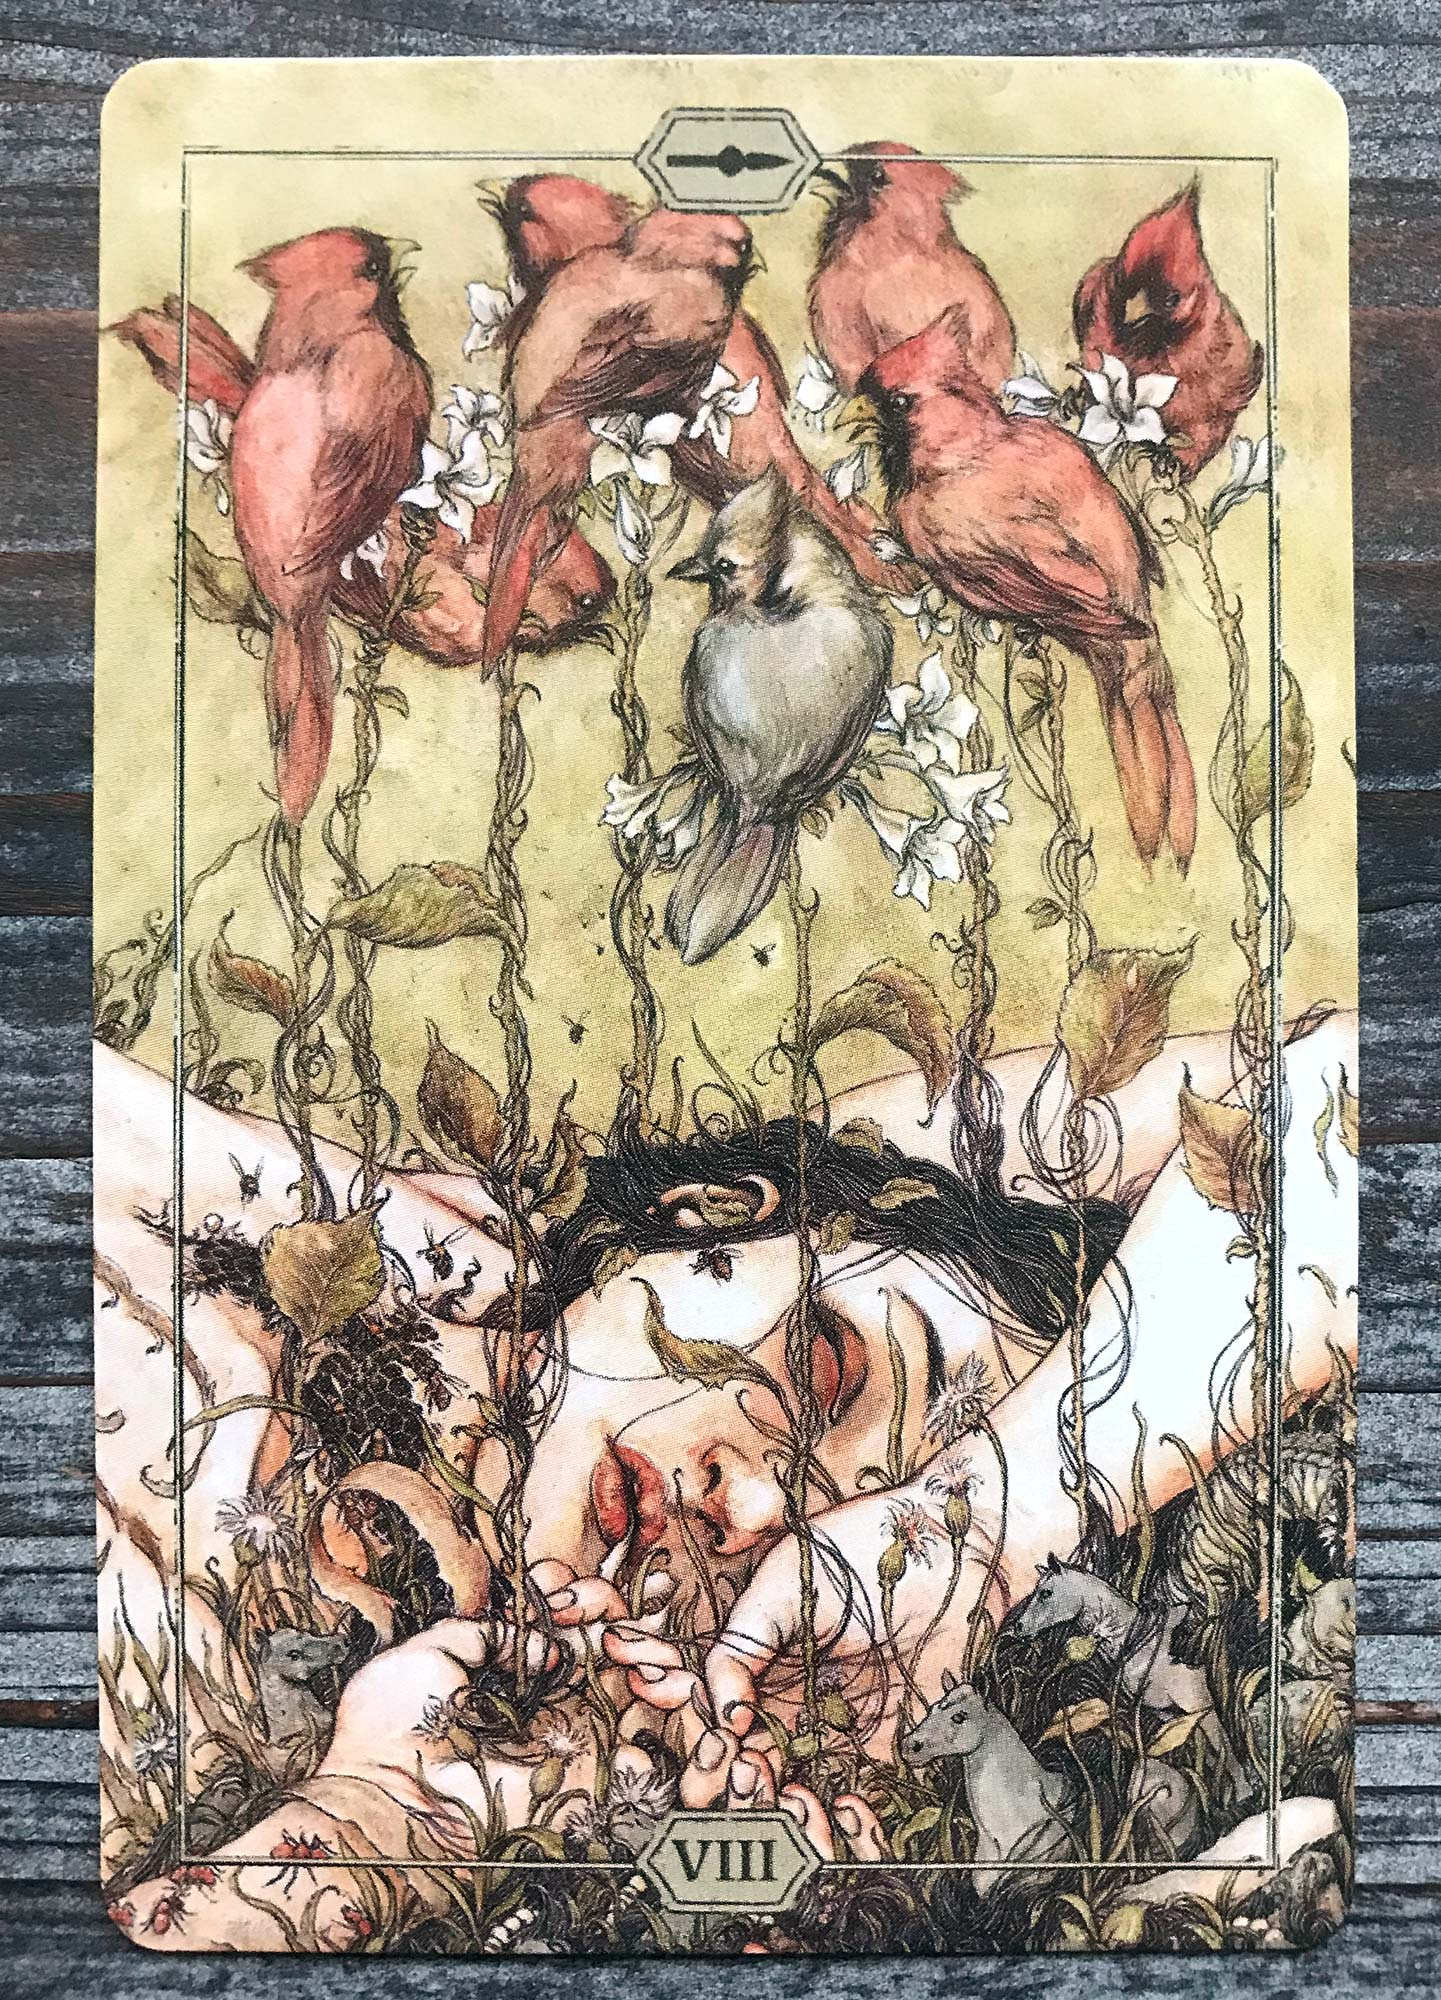 Hush Tarot - Eight of Wands